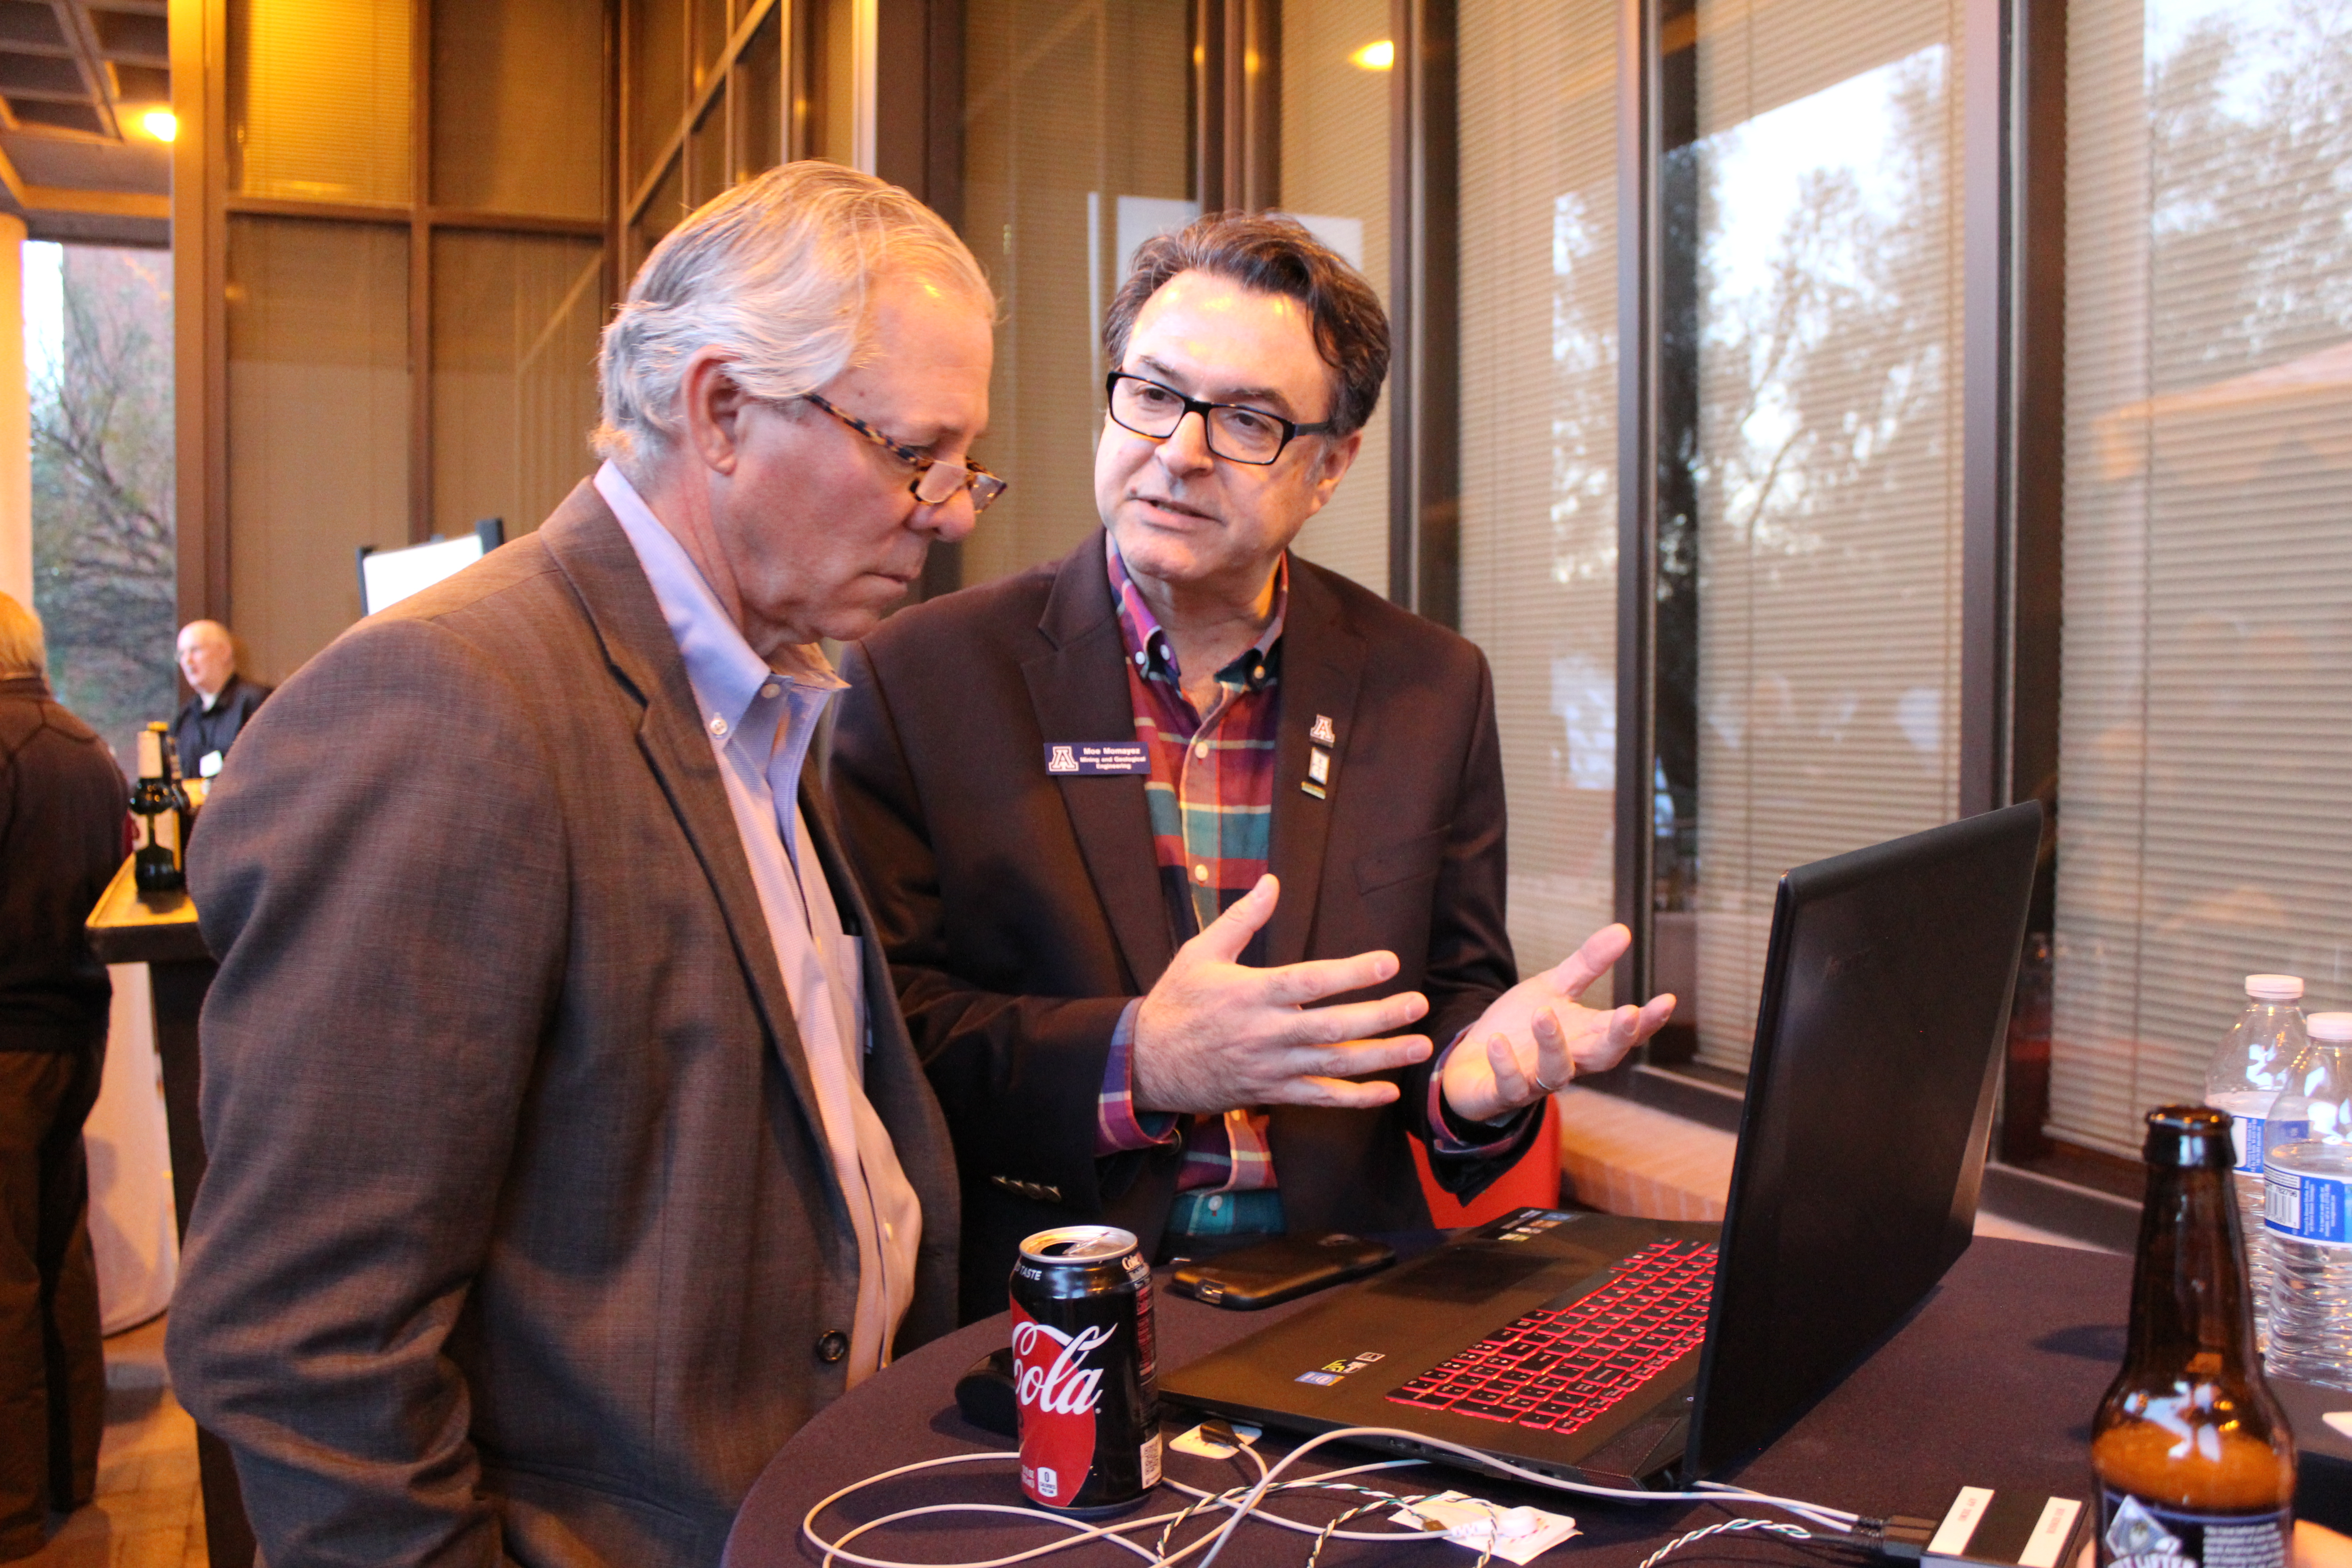 UA President Robert C. Robbins  talks with professor Moe Momayez about the mining sensor network Momayez developed and is bringing to market via the startup Guia.